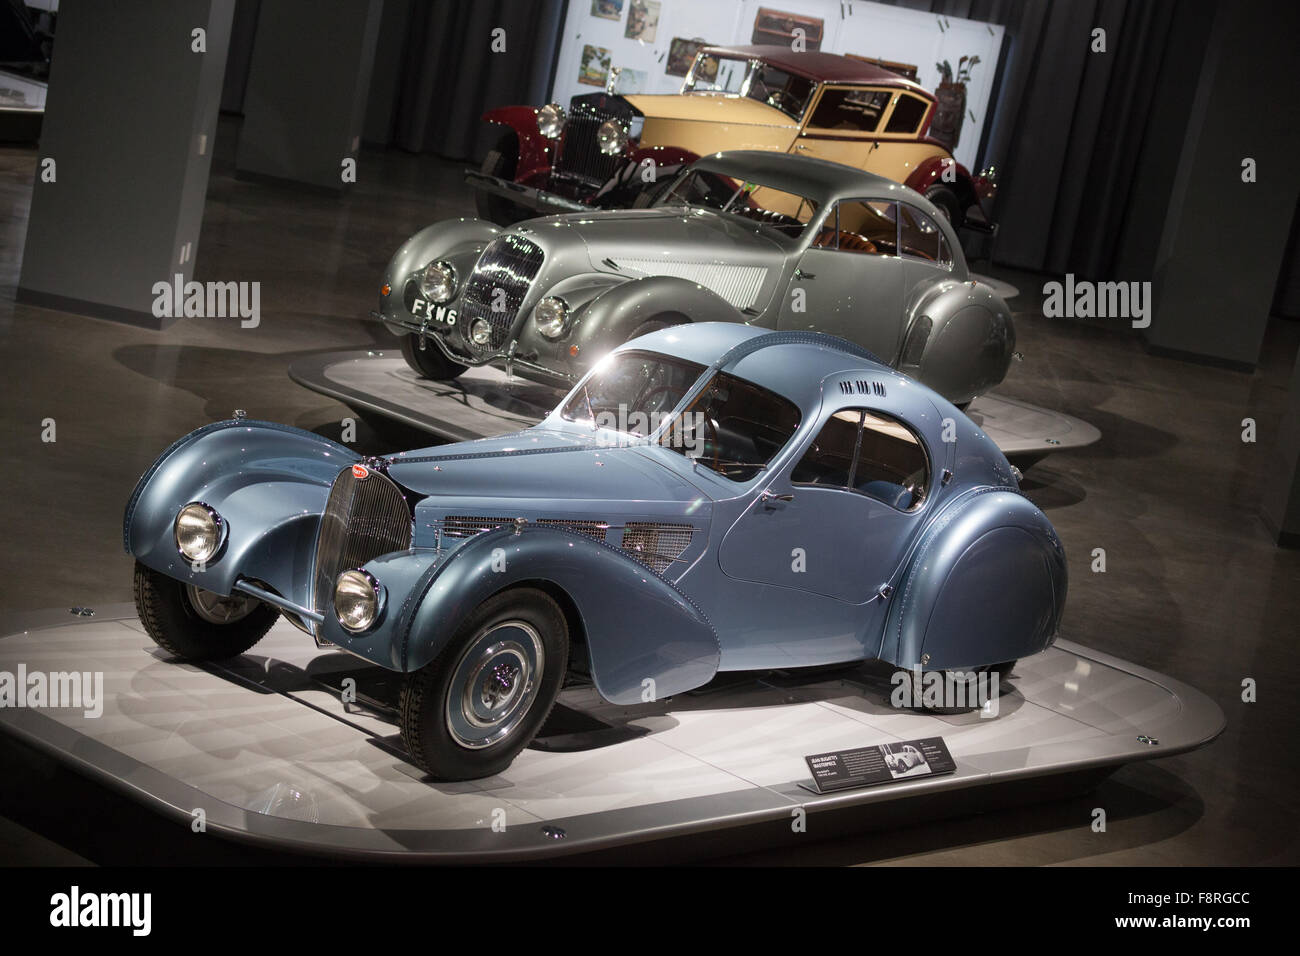 Cars In The Artistry Exhibit At The Petersen Automotive Museum - Classic car museums in usa